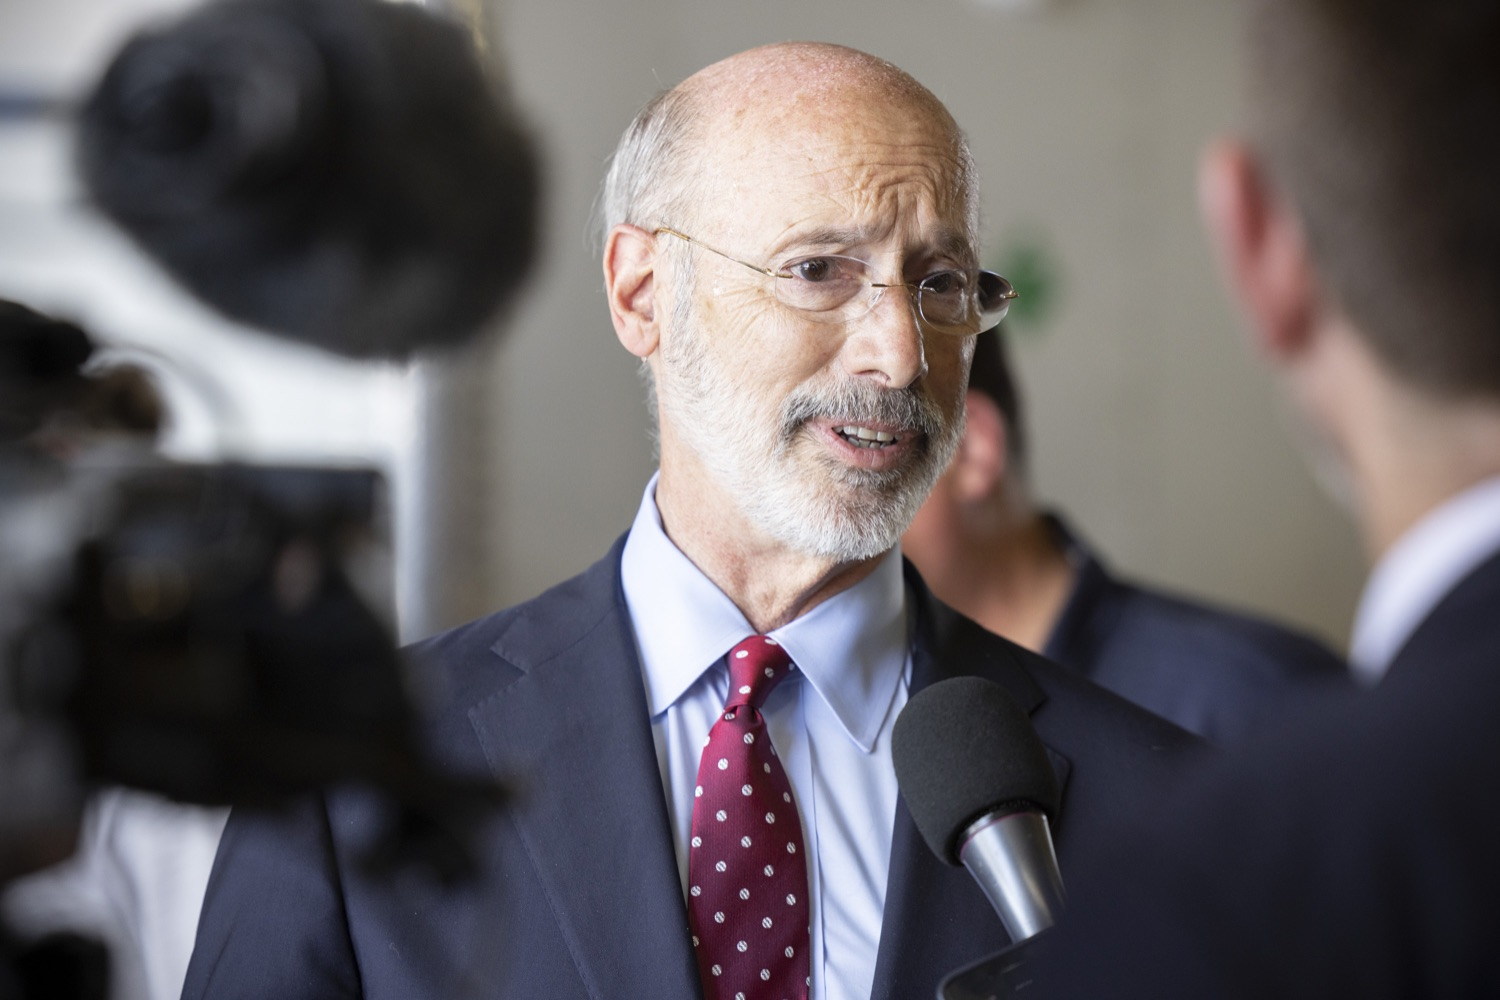 """<a href=""""https://filesource.wostreaming.net/commonwealthofpa/photo/18936_gov_taskforceone_dz_007.jpg"""" target=""""_blank"""">⇣Download Photo<br></a>Pennsylvania Governor Tom Wolf speaking with the press.  Governor Tom Wolf thanked members of Pennsylvania-Task Force 1 (PA- TF1), who returned today to Philadelphia after spending two weeks assisting with search and rescue efforts at the site of the recent deadly building collapse in Surfside, Florida.  Philadelphia, Pa.  July 16, 2021"""